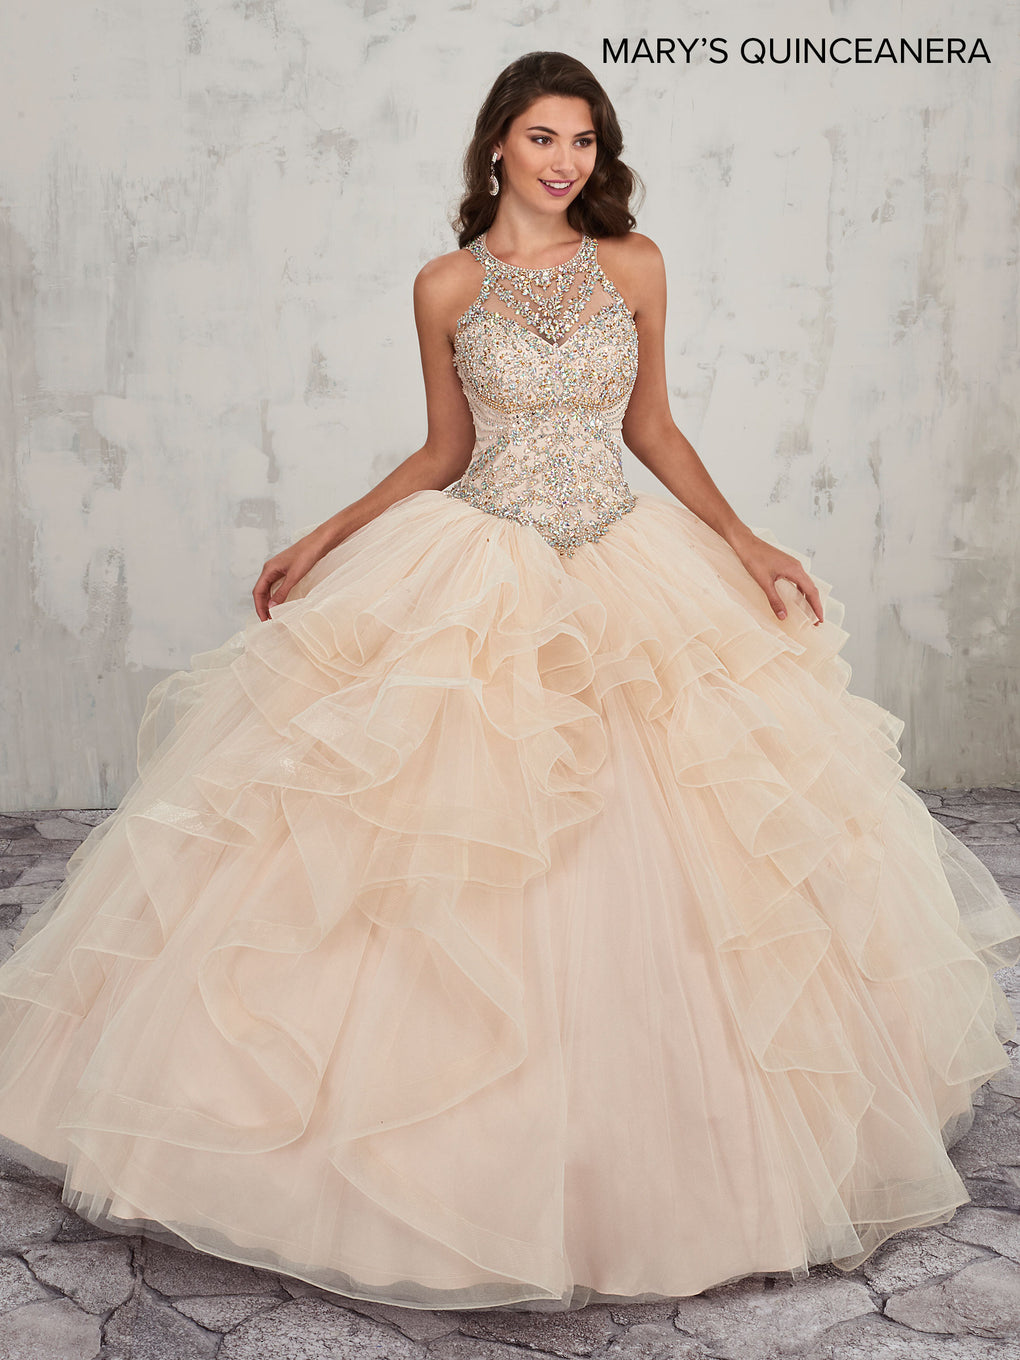 Marys Quinceanera Dresses in Blueberry, Champagne, or White Color